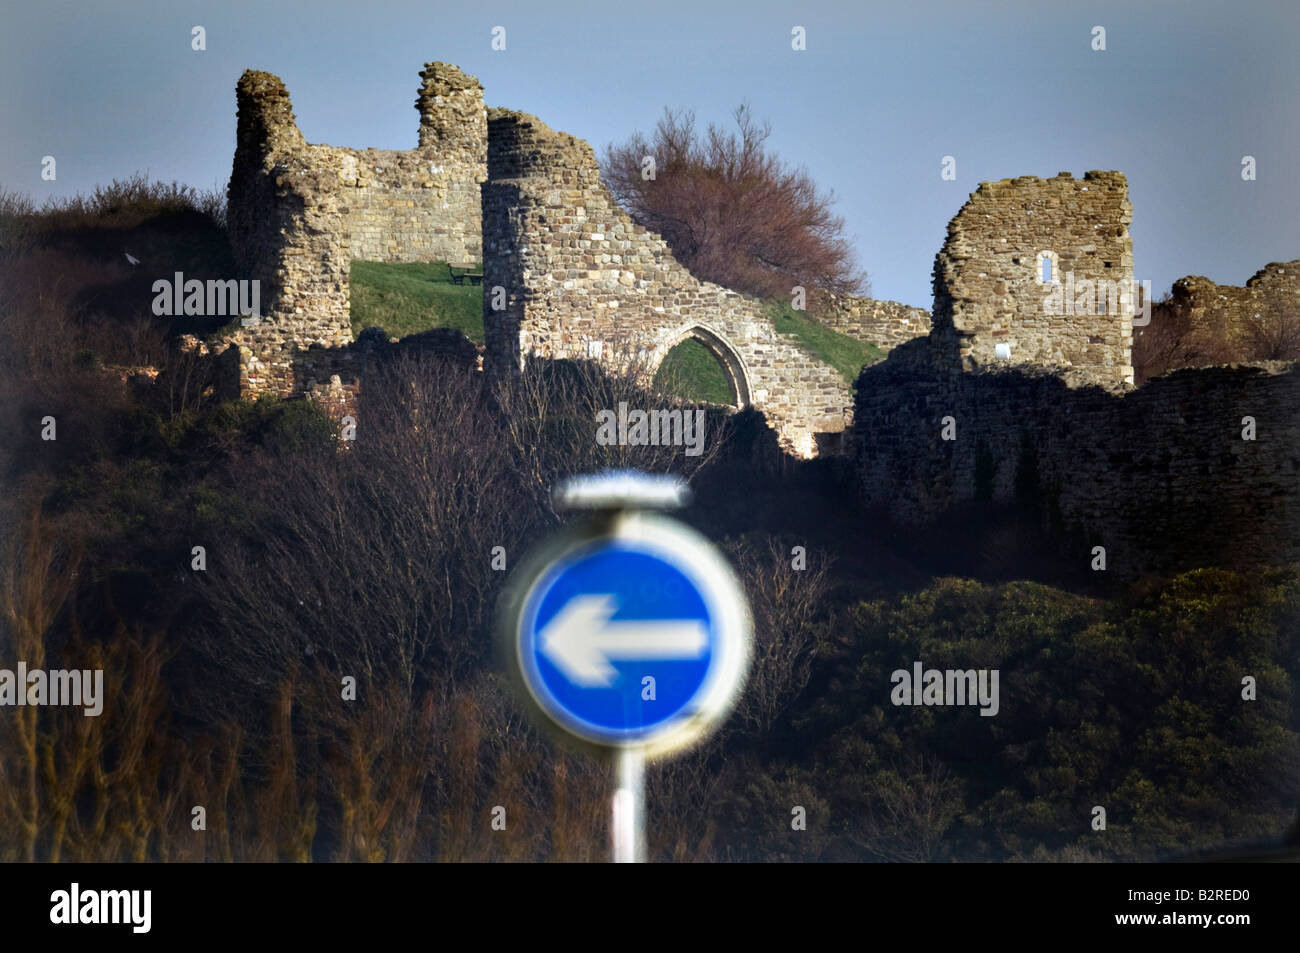 A Keep Left road sign in front of the ruins of the Norman Castle in Hastings East Sussex. - Stock Image